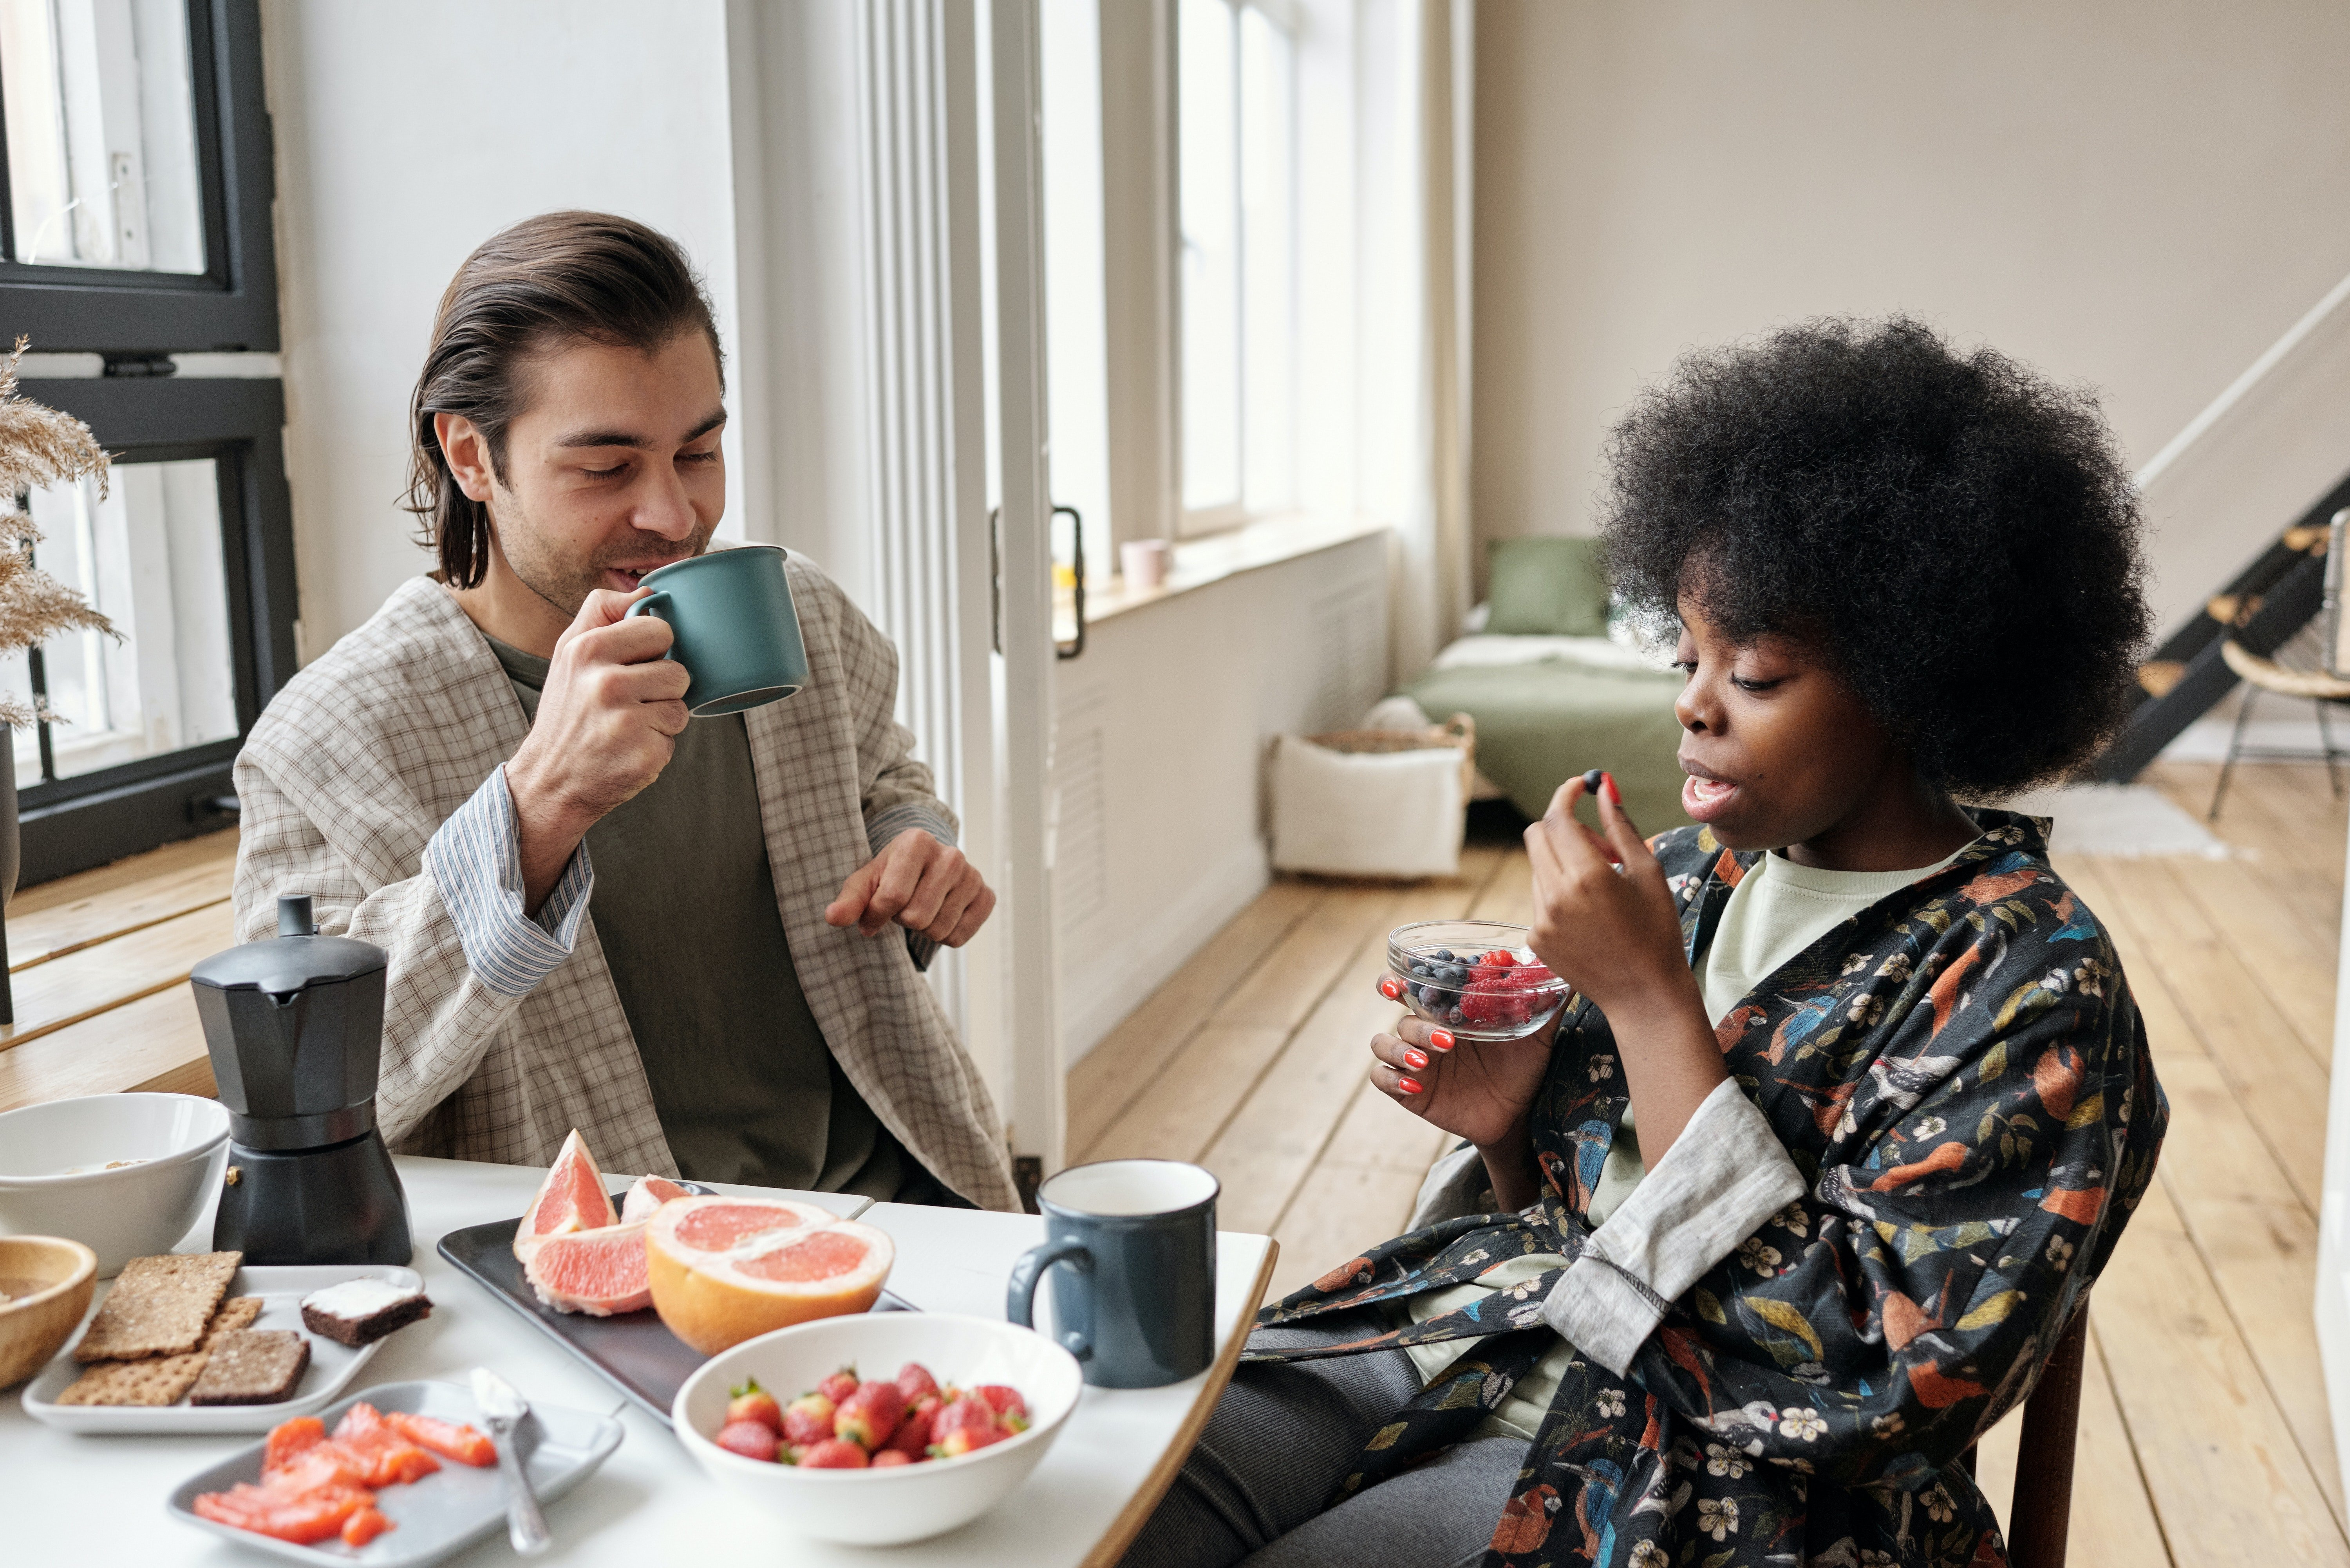 A man and woman drinking tea together.   Pexels/ Jack Sparrow